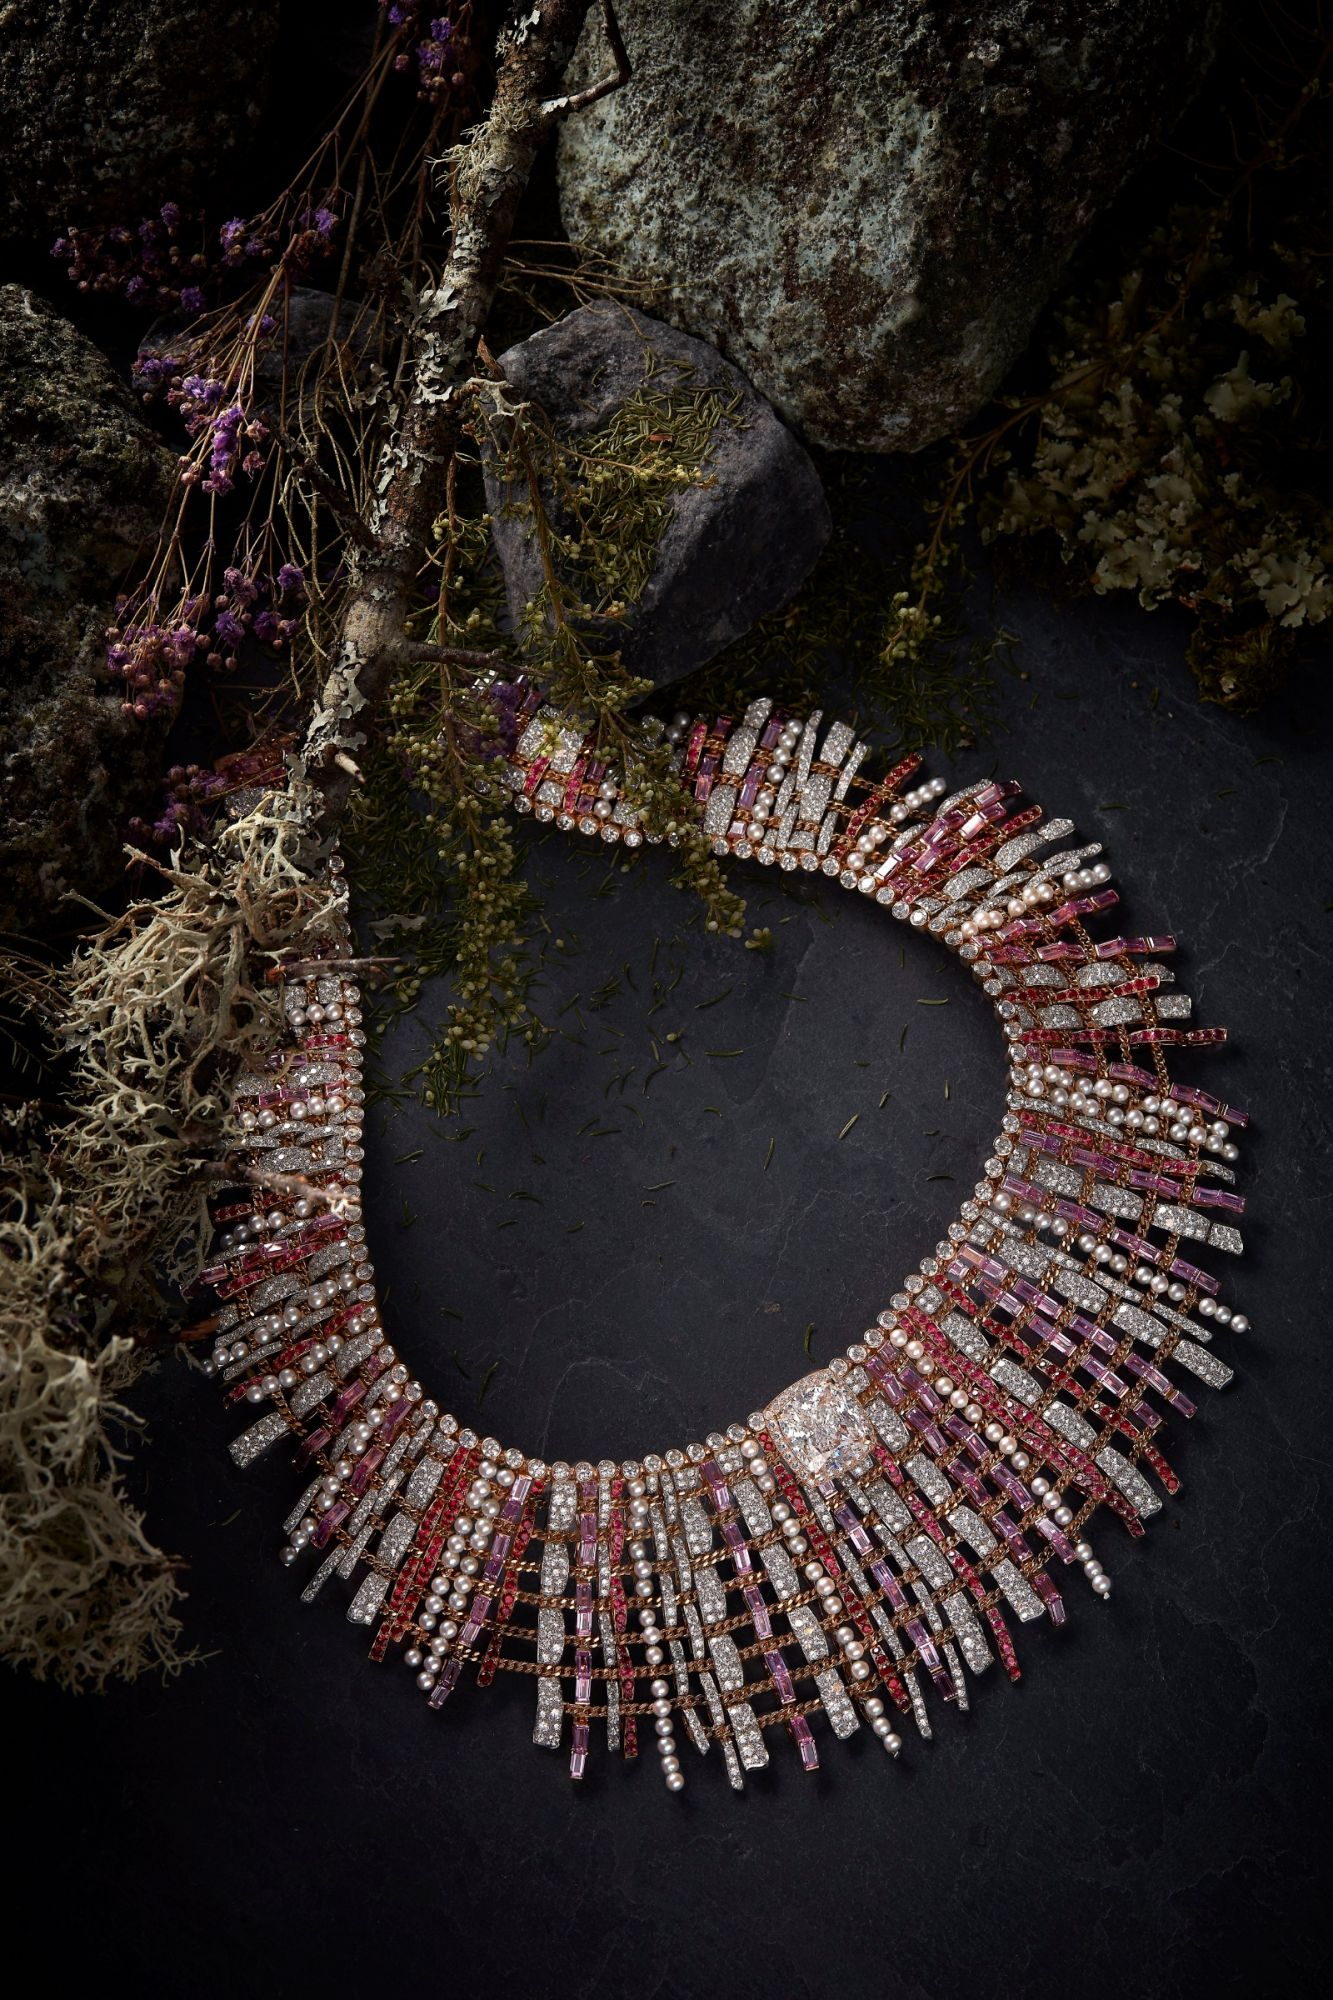 The Tweed de Chanel High Jewellery Collection is on Display in Singapore Until March 17